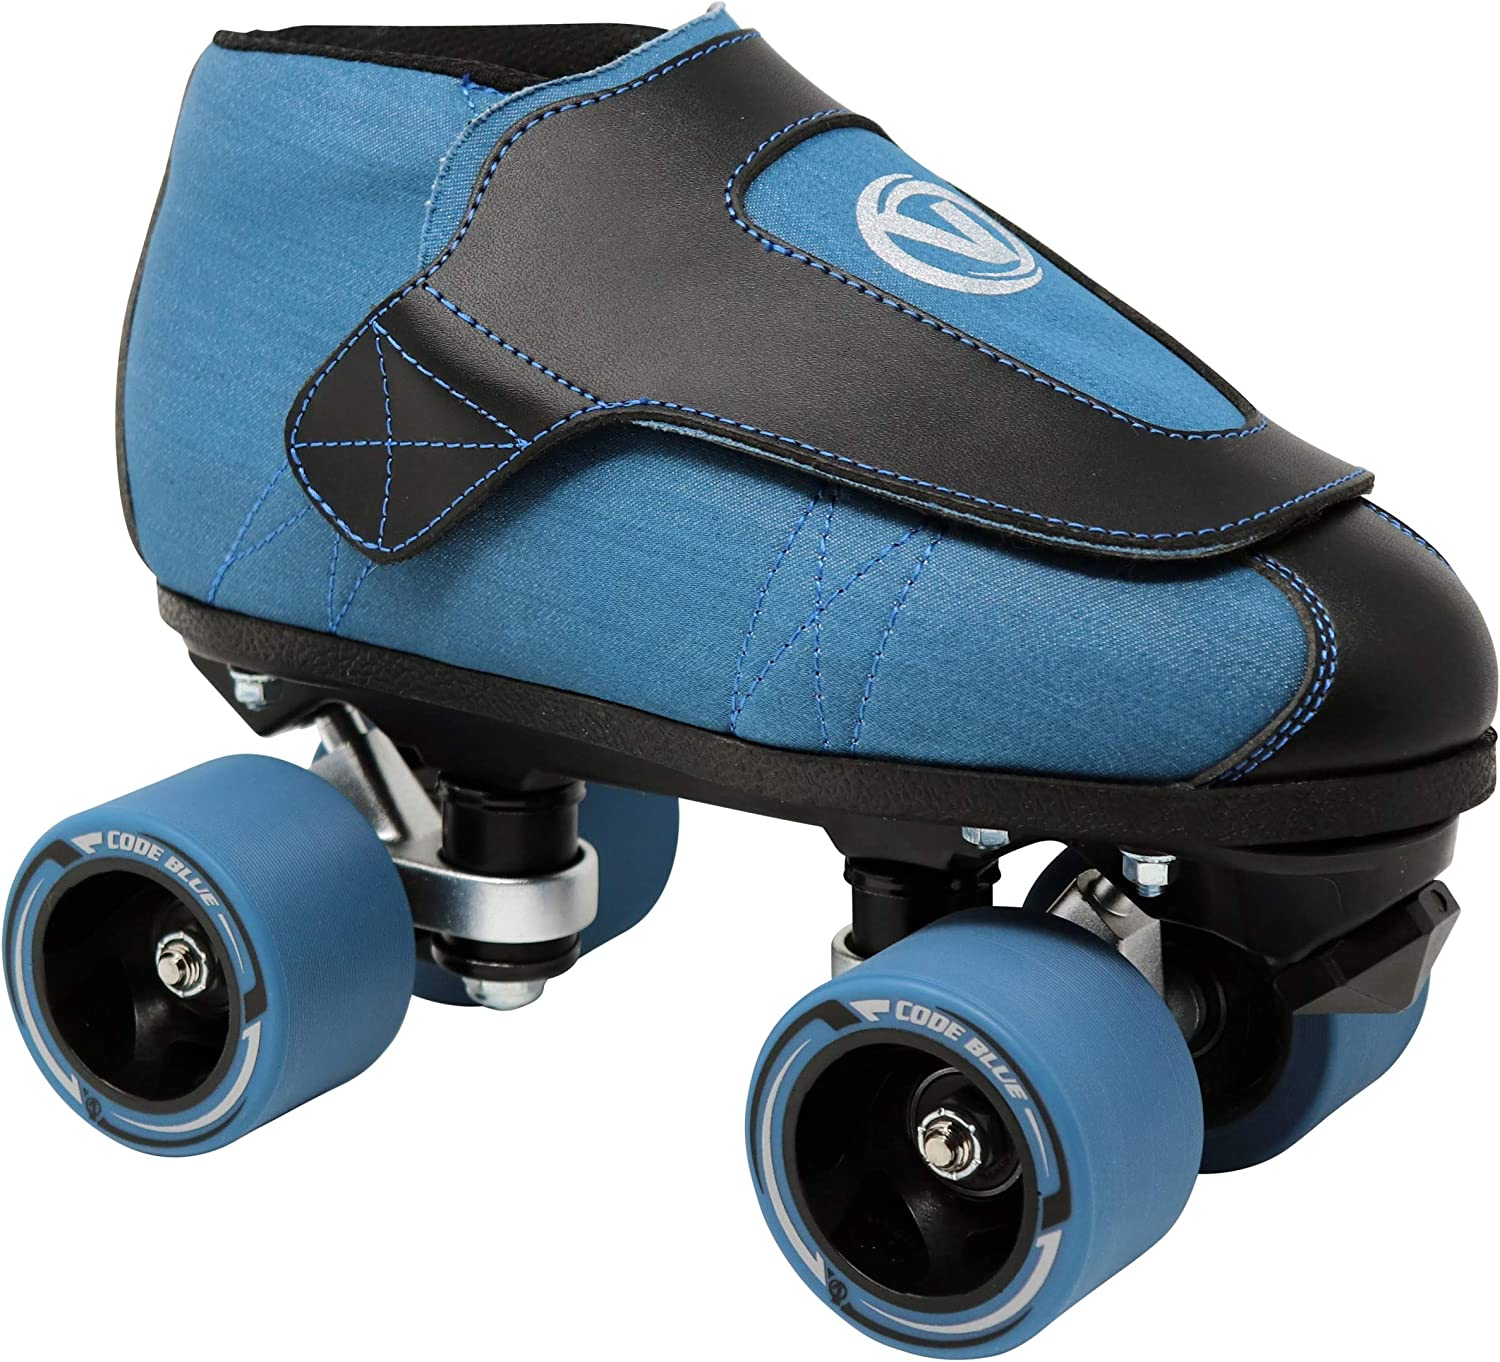 VNLA Code Blue Jam Skate - Mens & Womens Speed Skates / US